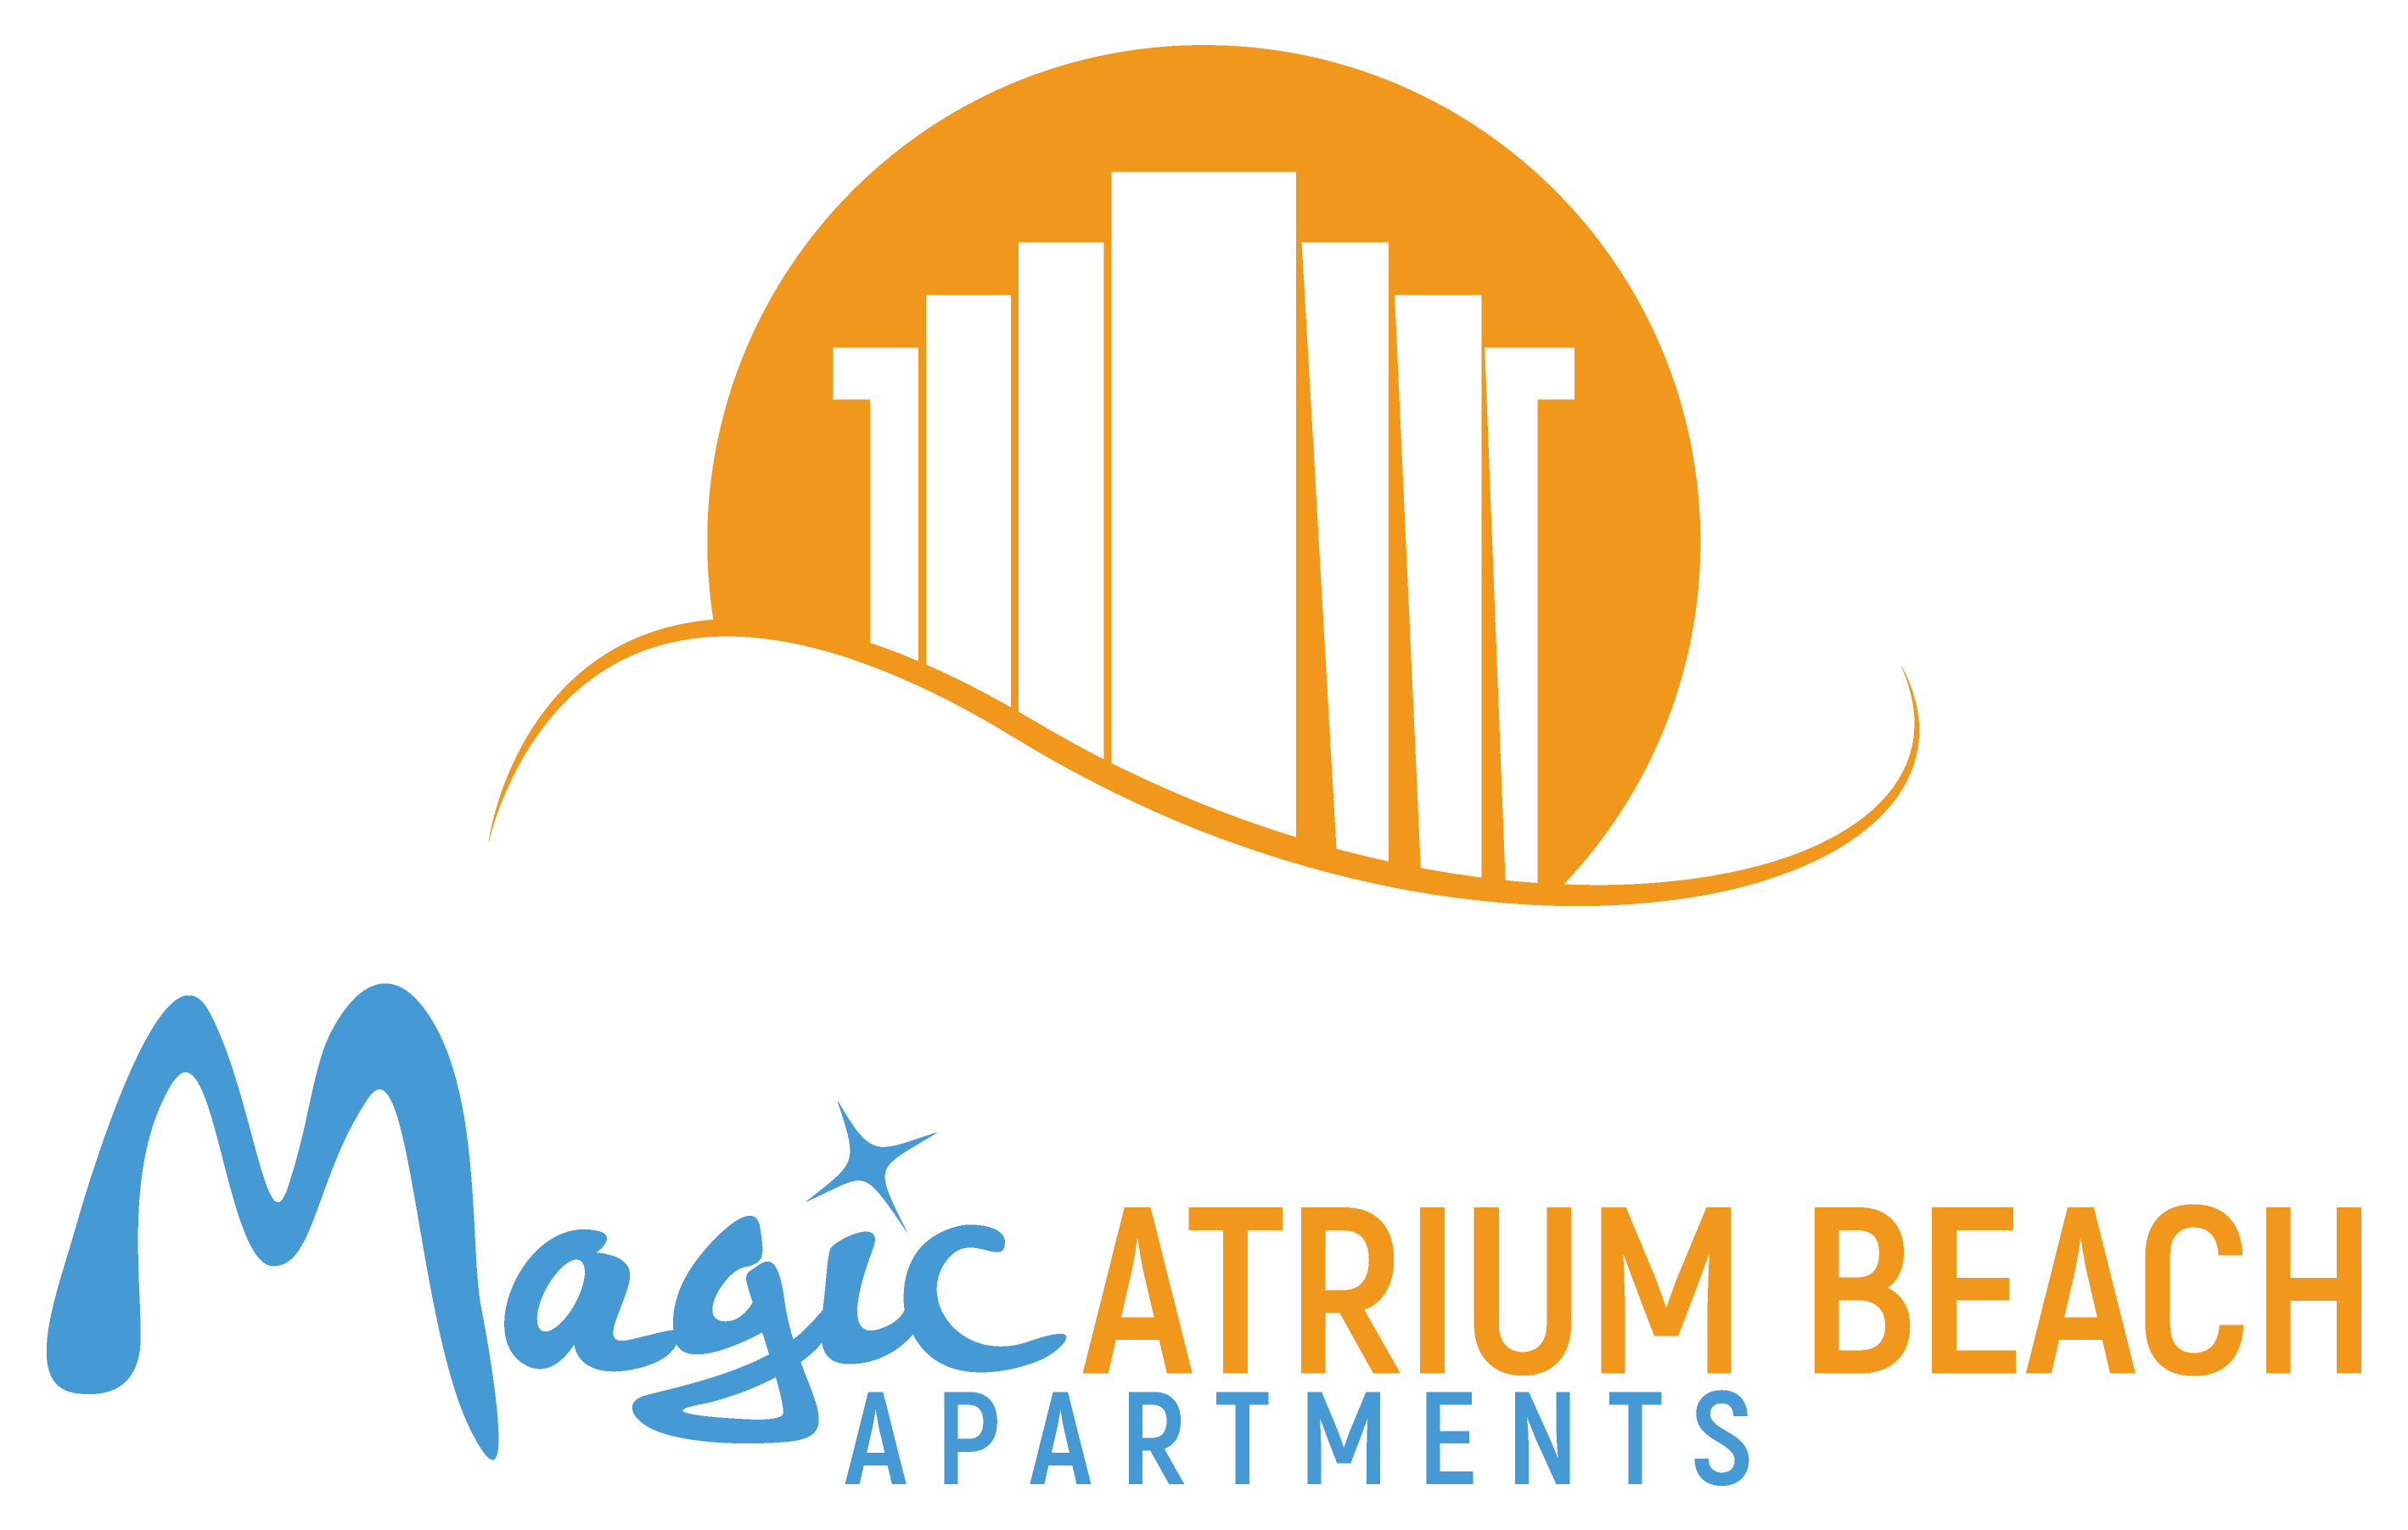 Appartements Magic Atrium Beach None étoiles